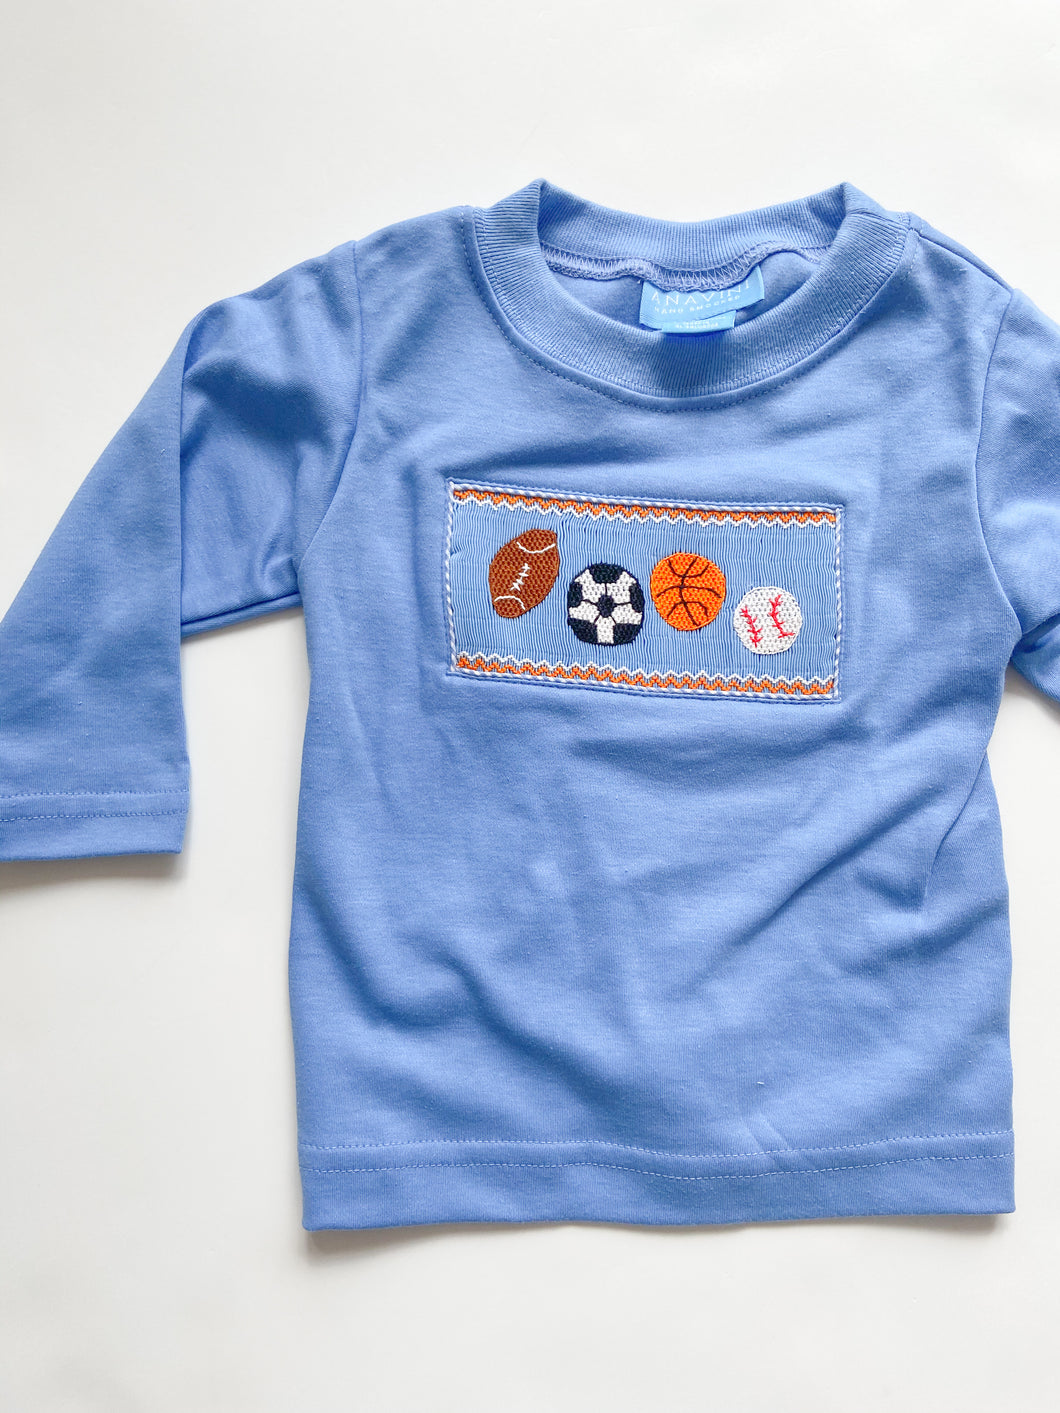 Sports Smocked T-Shirt 310P - Infant